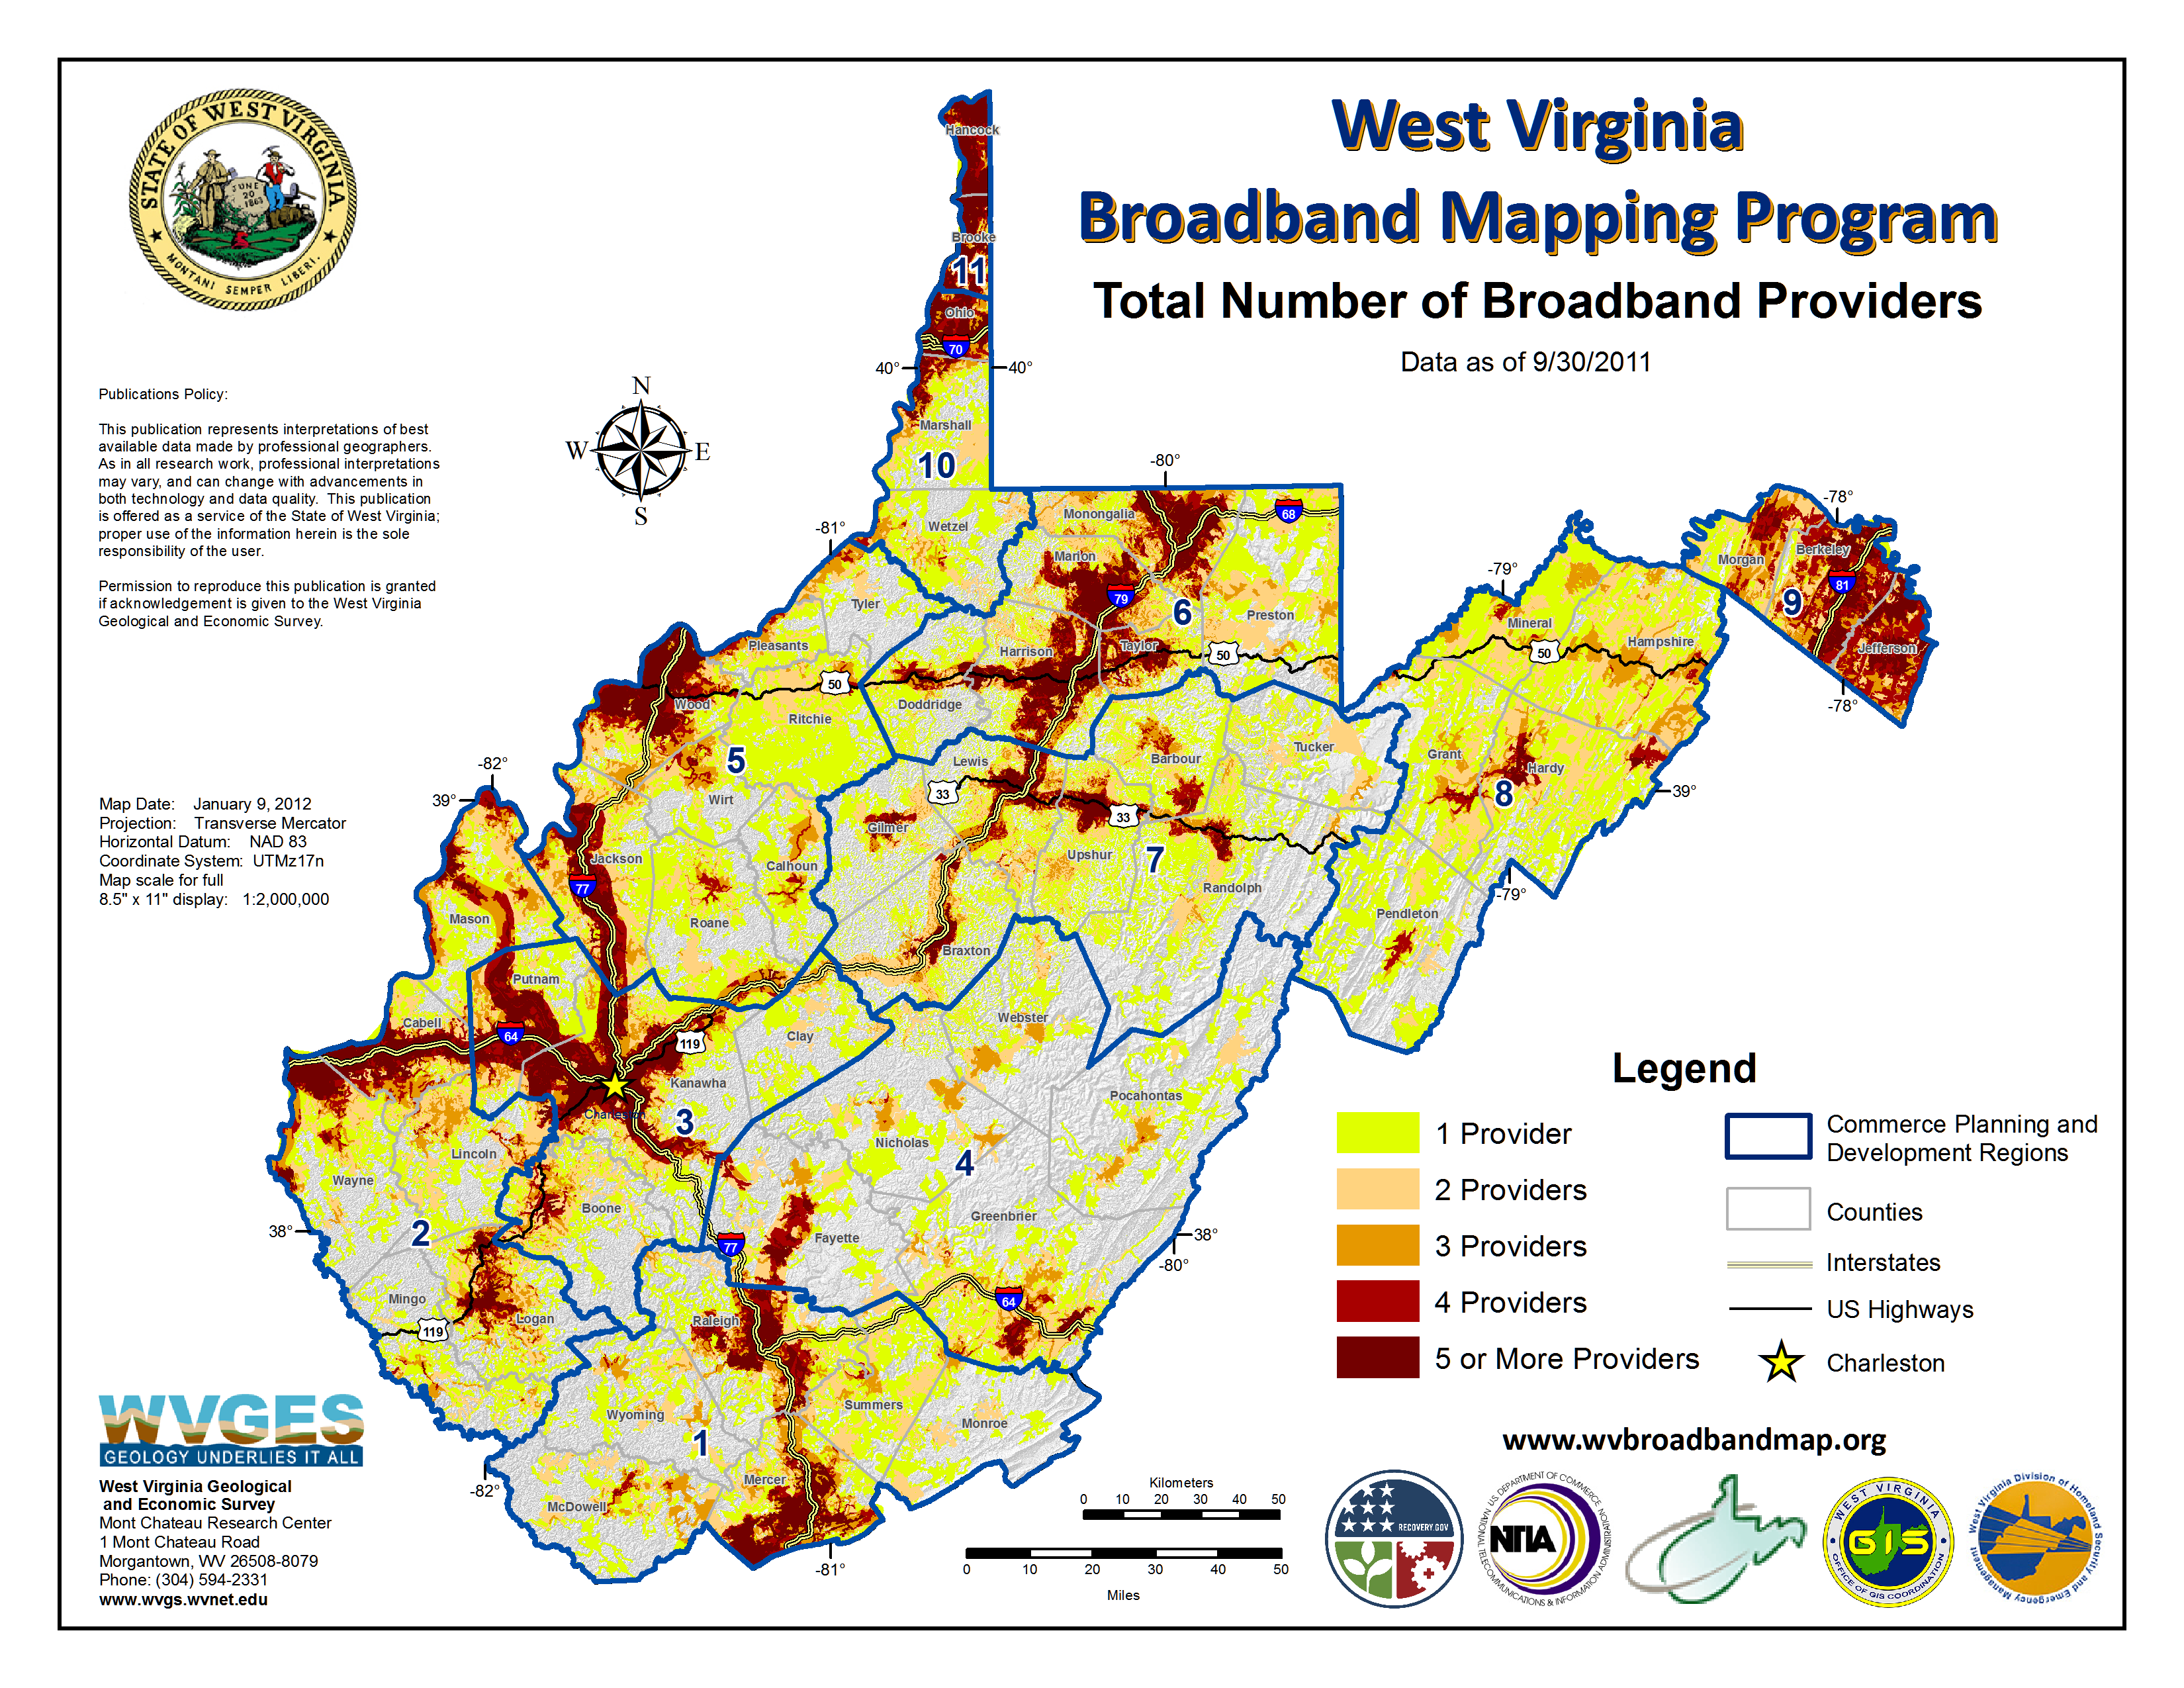 West Virginia Broadband Mapping Program Maps - Map of cable providers in the us